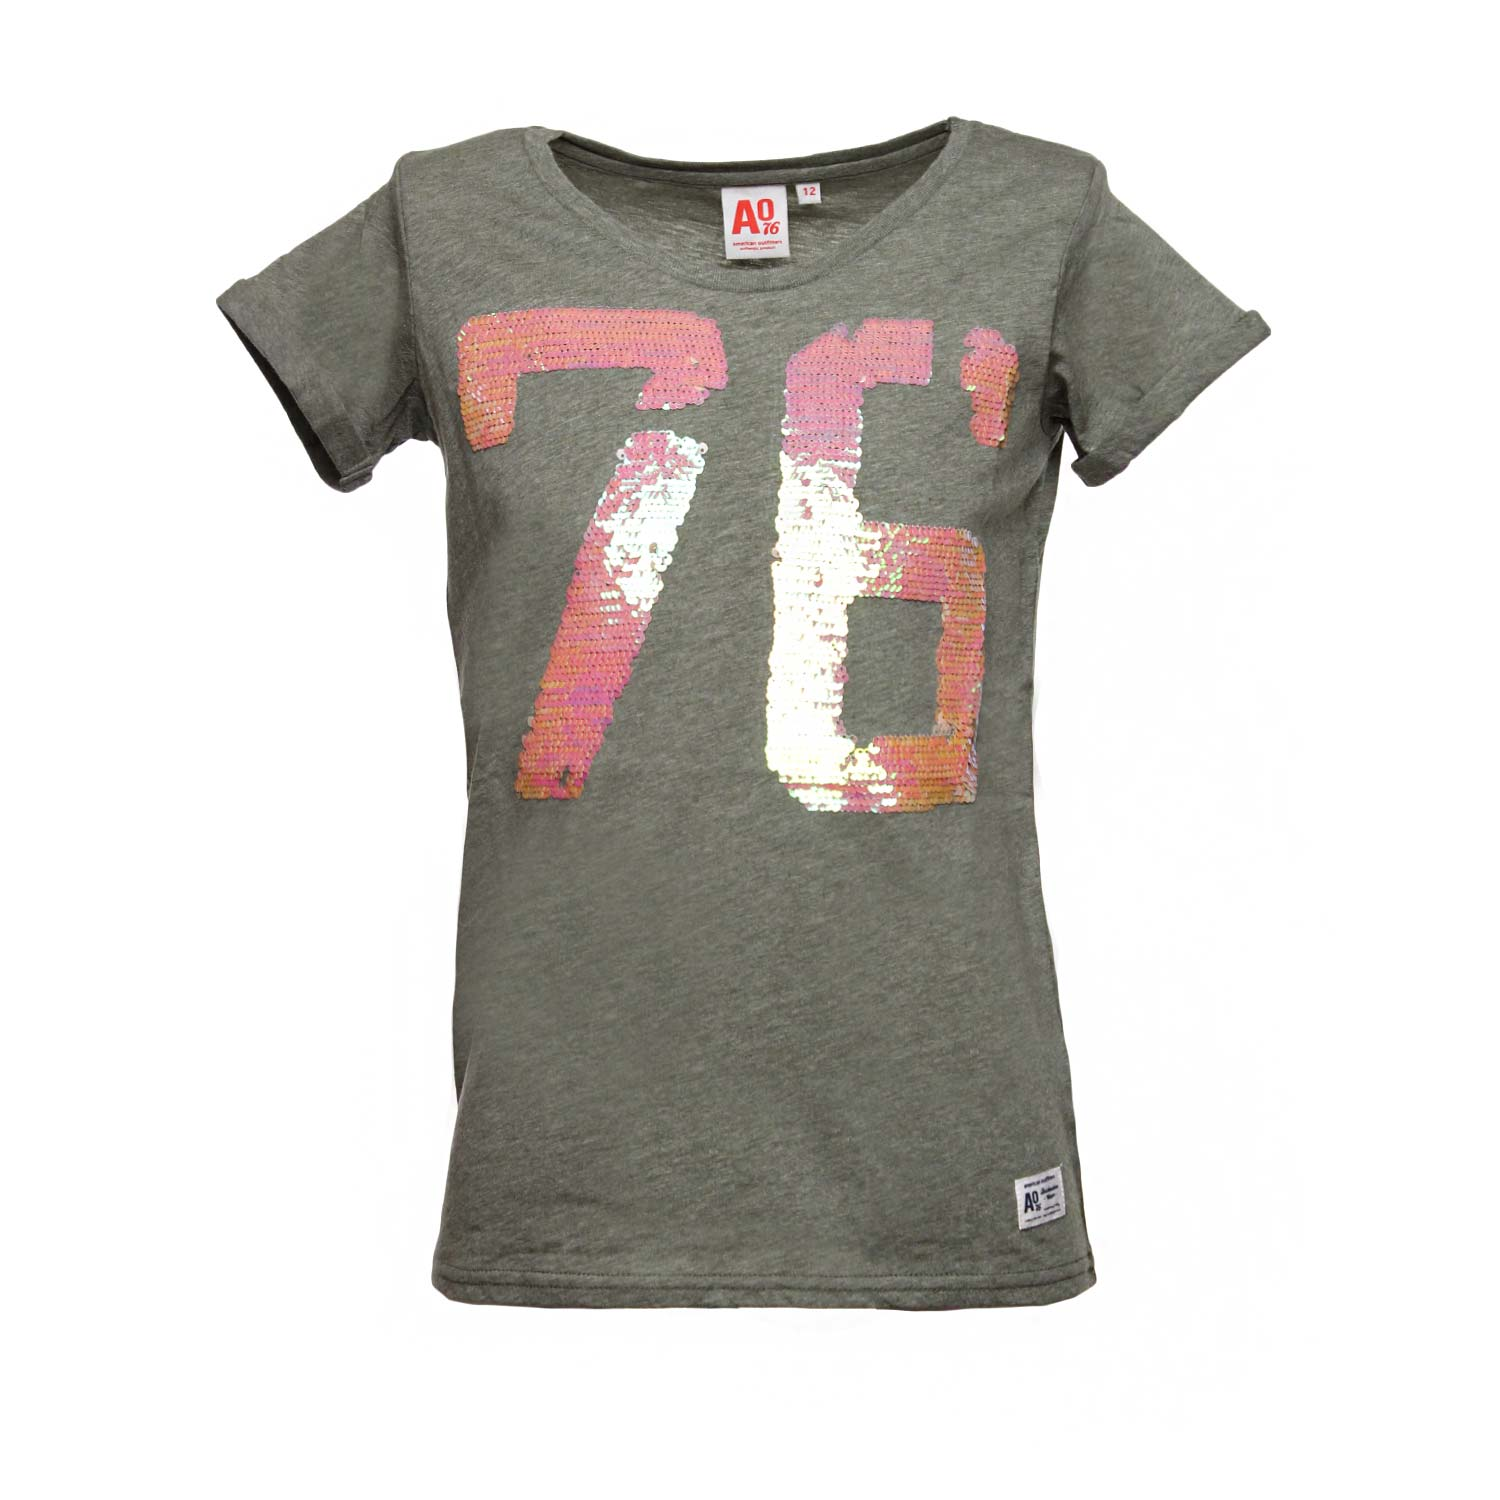 American Outfitters - T-Shirt Oliva 76 - annameglio.com shop online